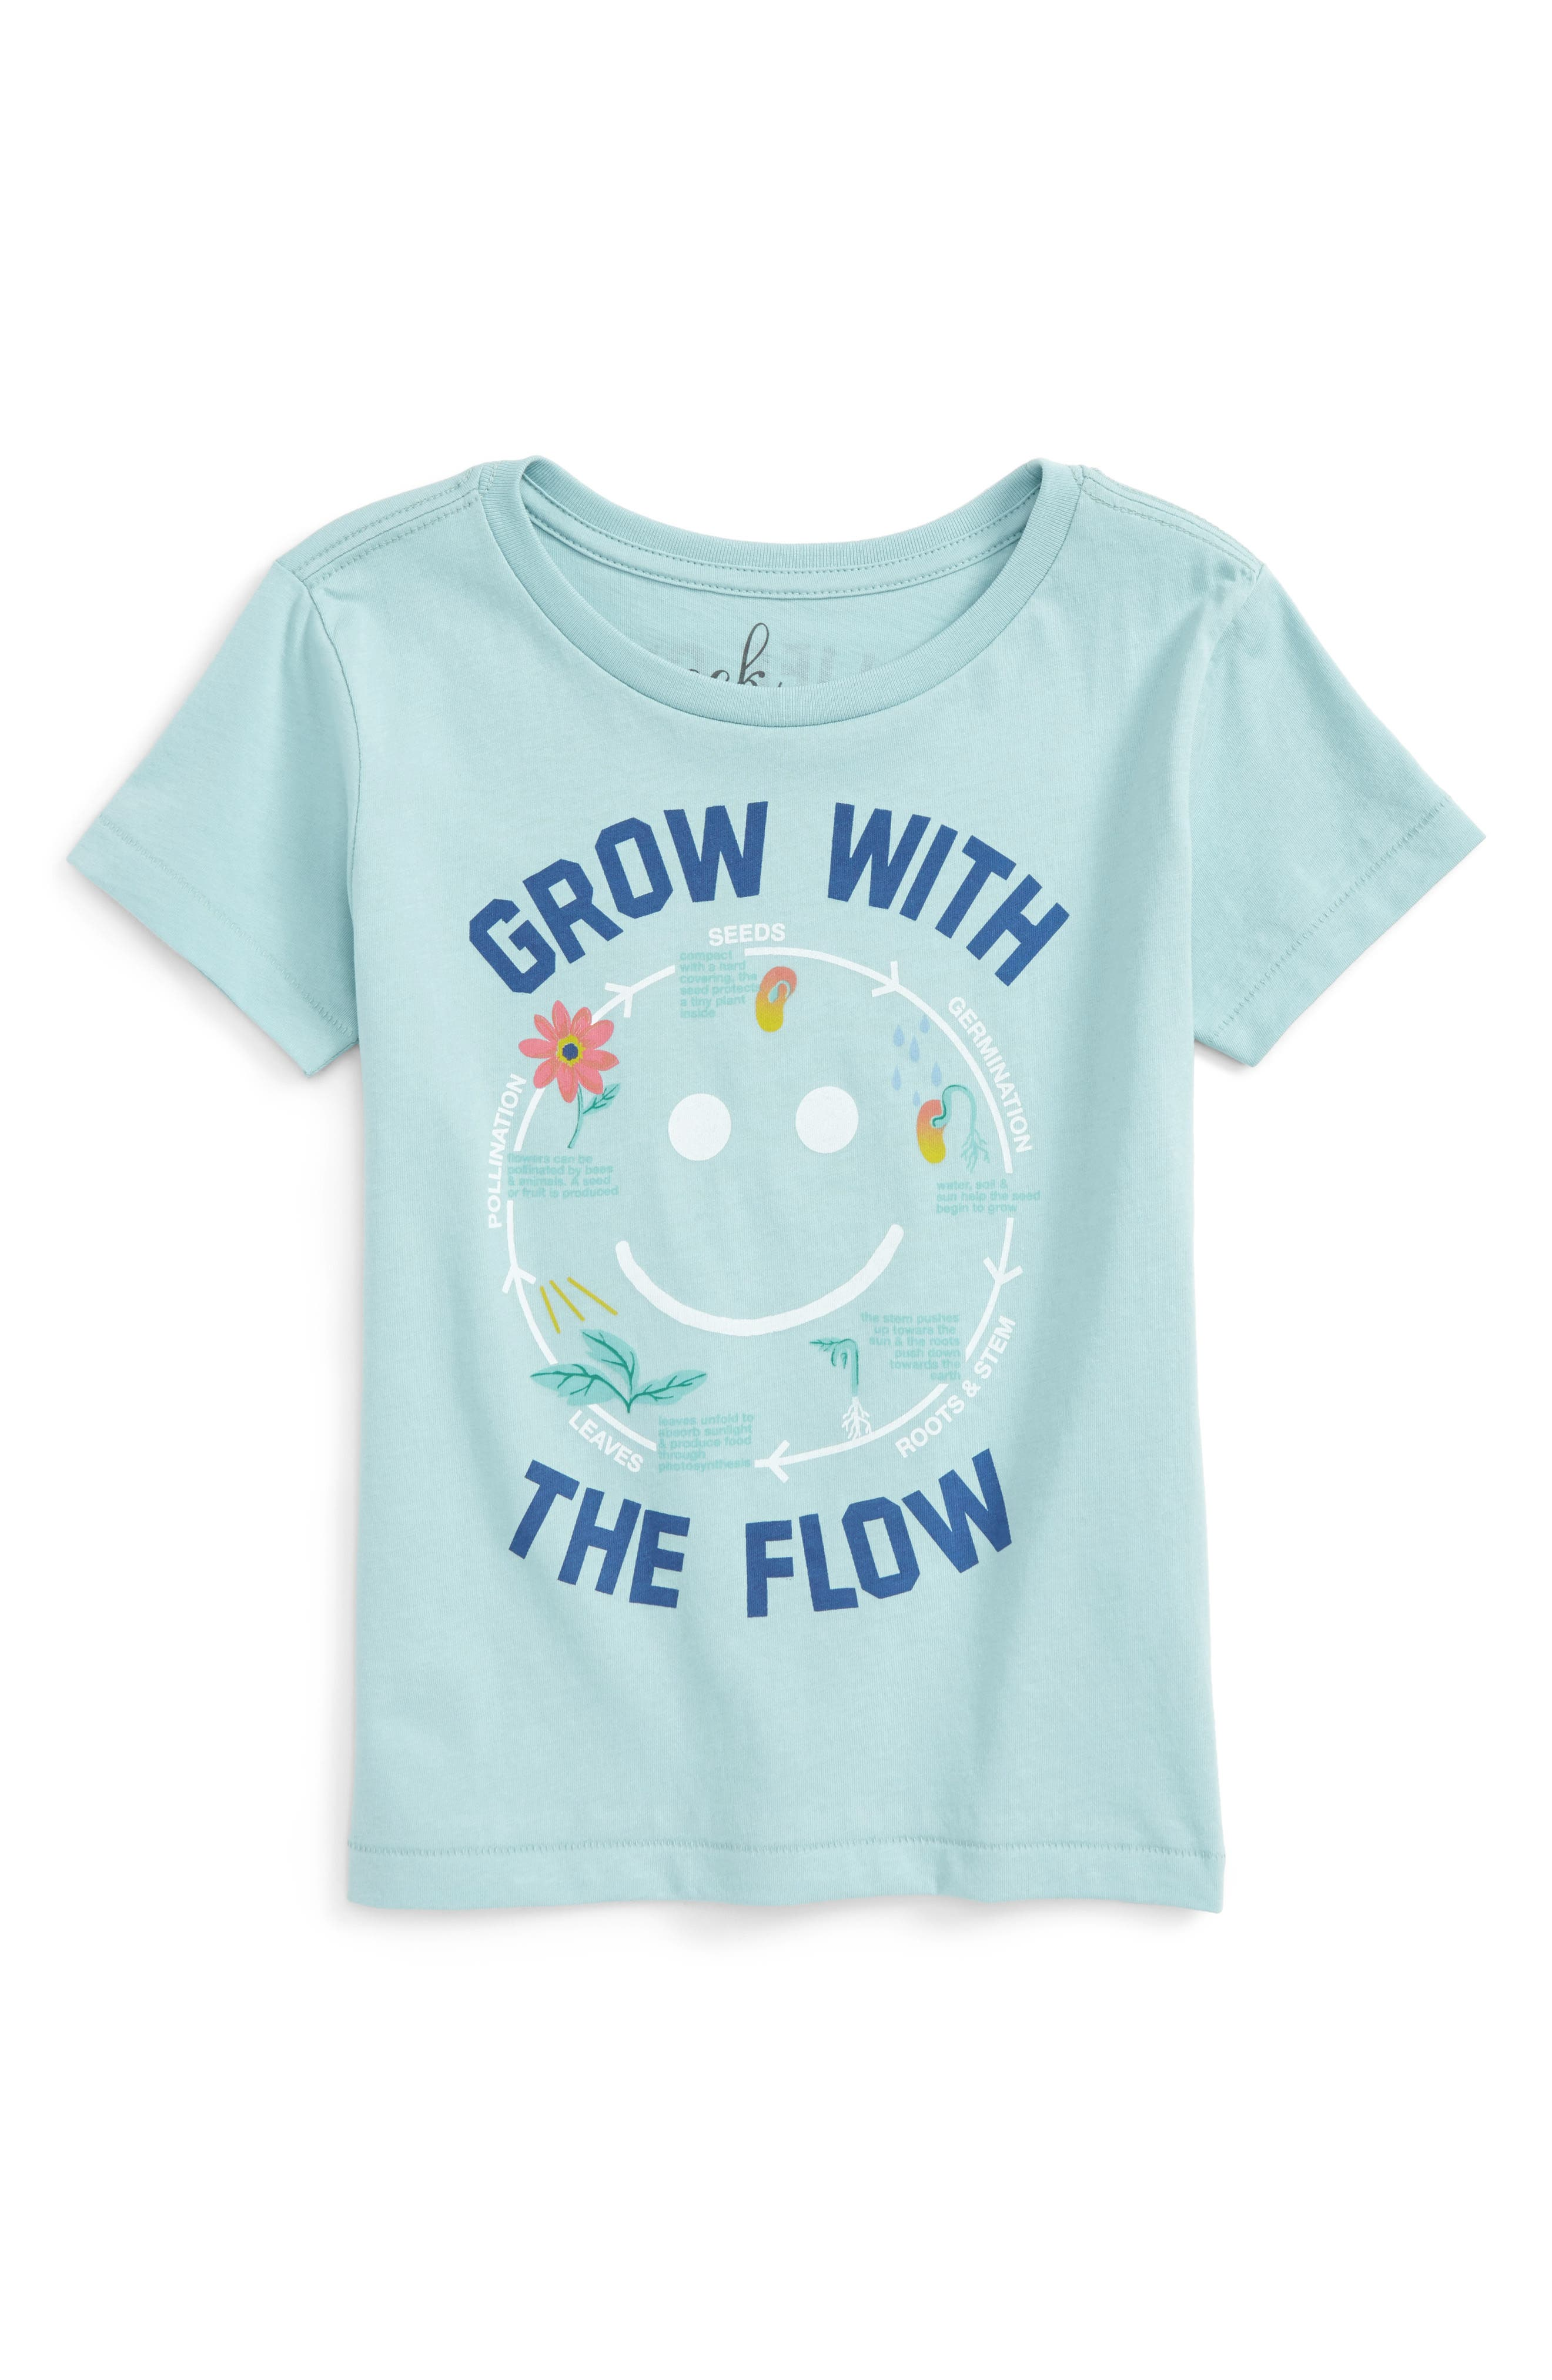 Main Image - Peek Grow with the Flow Graphic Tee (Toddler Girls, Little Girls & Big Girls)